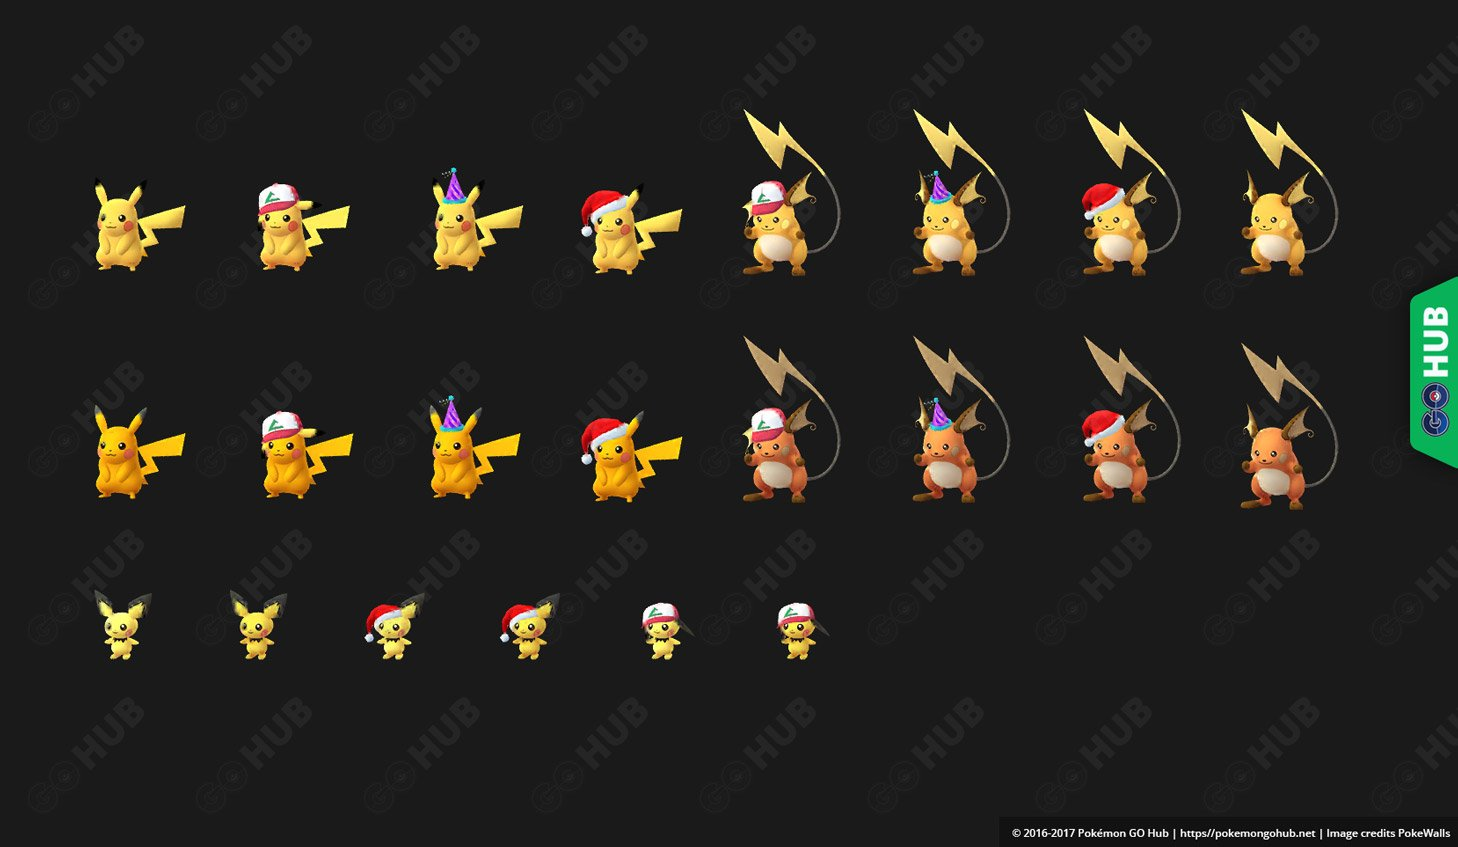 Shiny Pichu Pikachu Raichu Discovered Apps Network Traffic